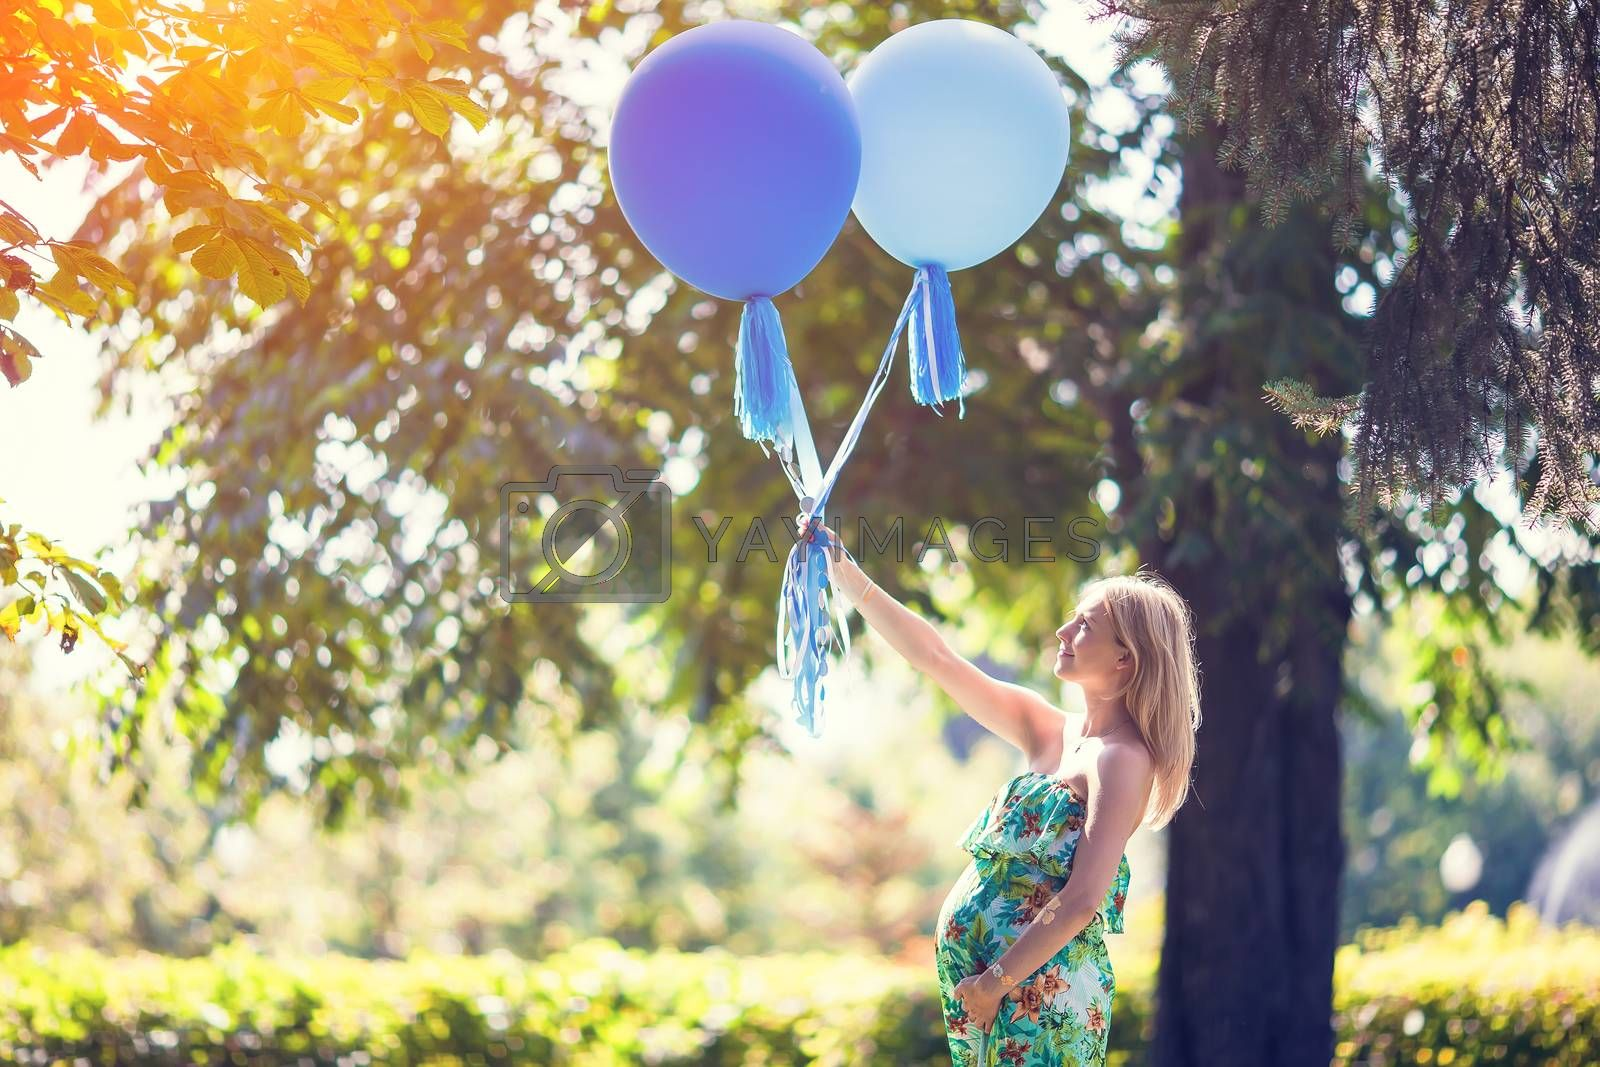 Pregnant woman with a bunch of balloons in outdoor park